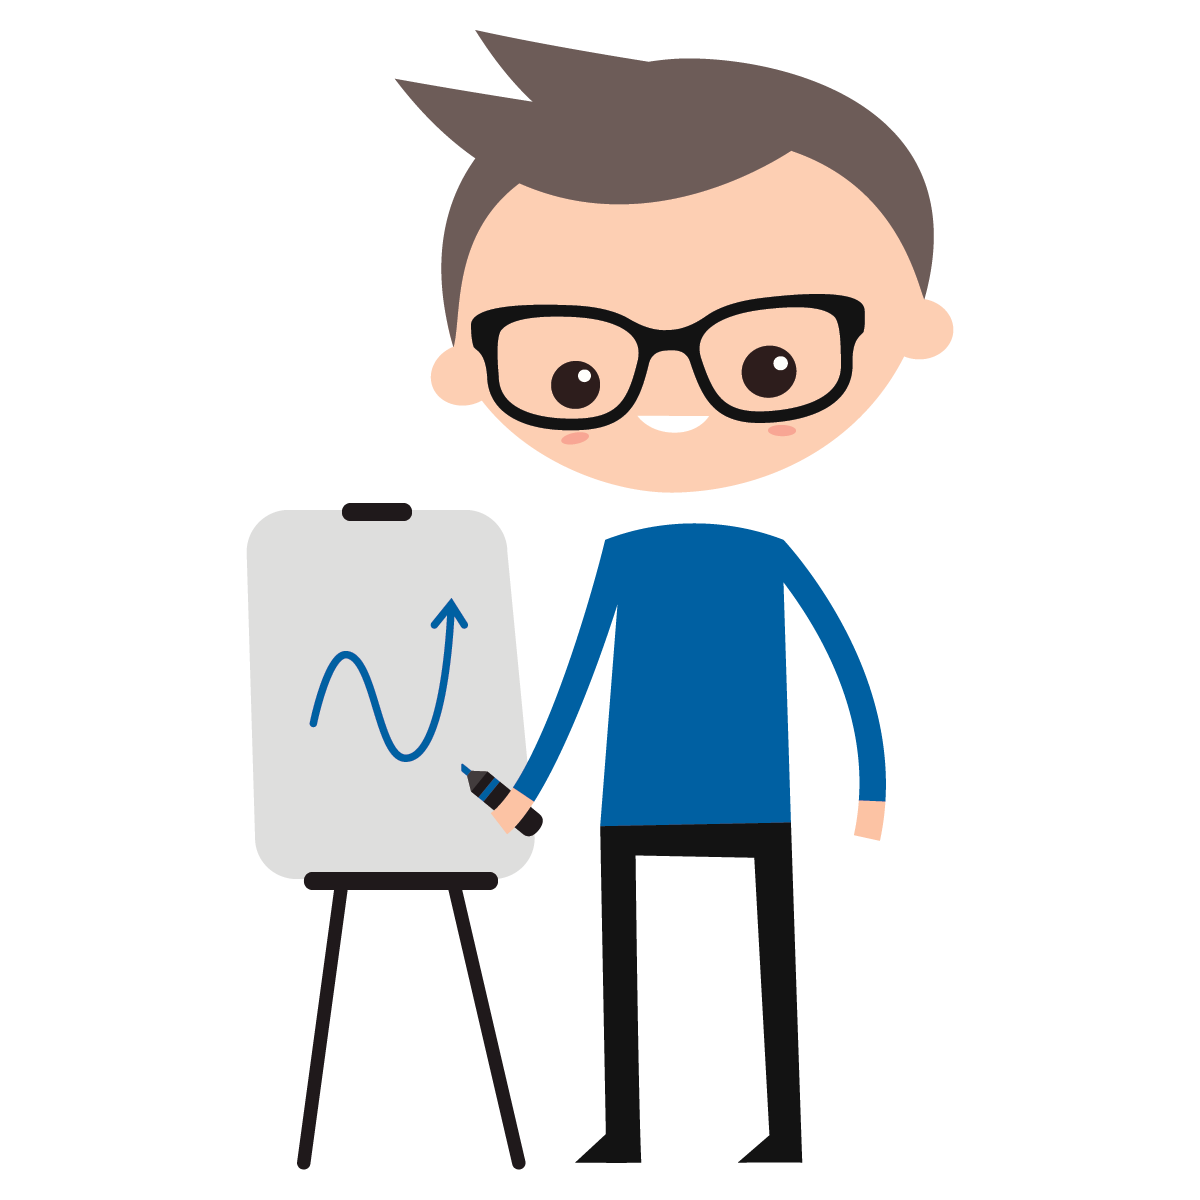 Teach clipart tutoring. Become a tutor with